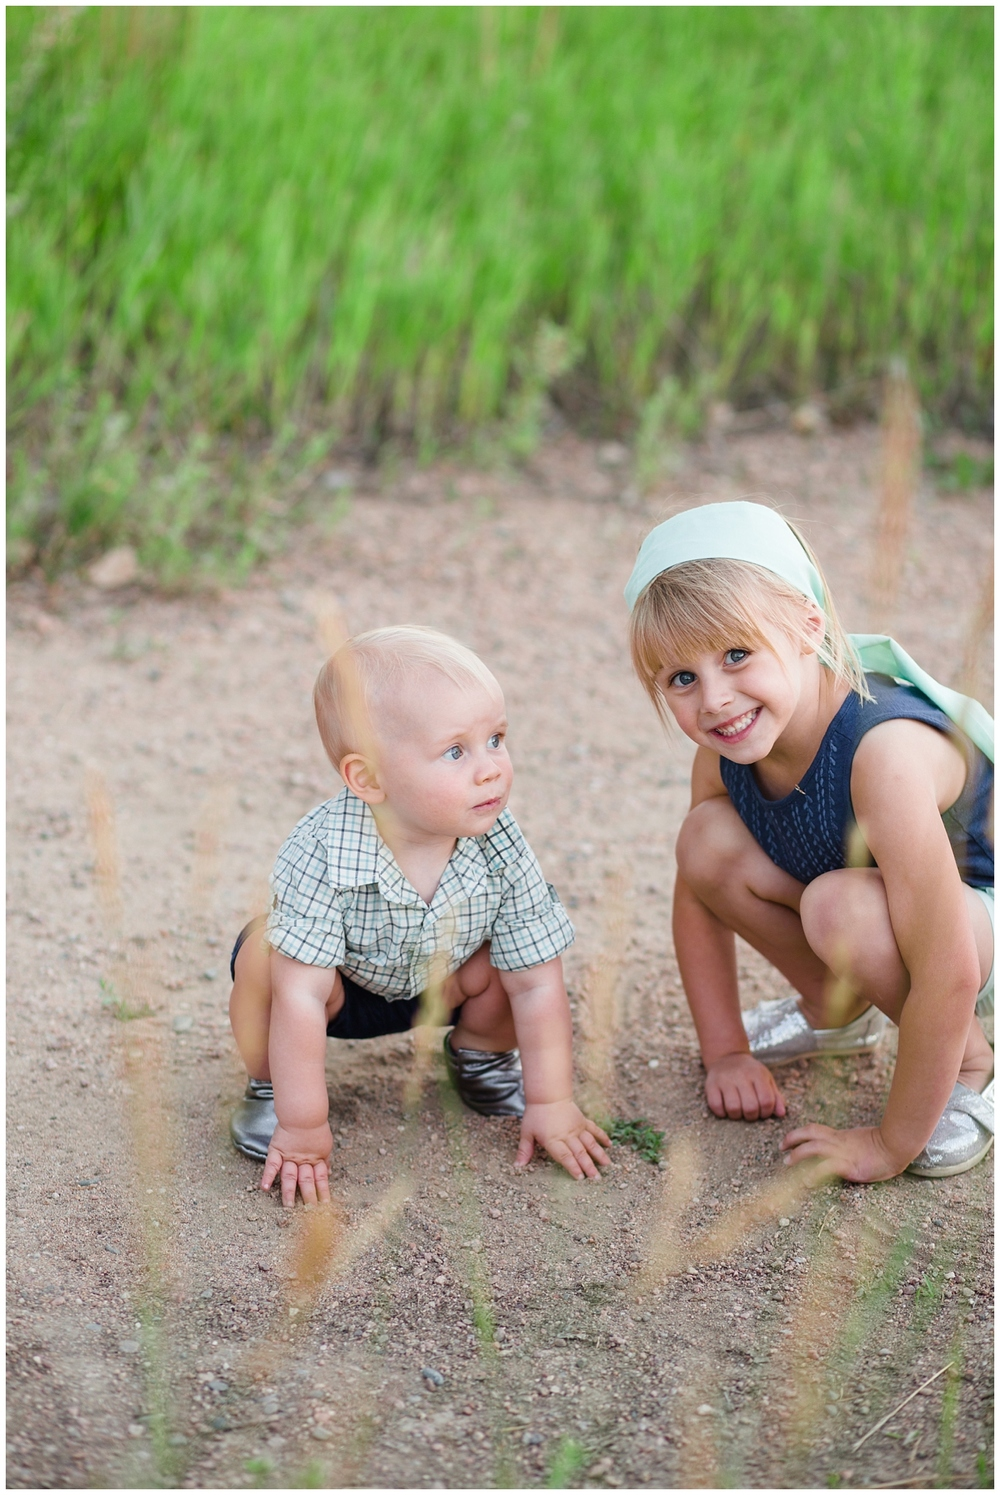 20150728FamilySunderlandJessica043_fort collins family photographer.jpg